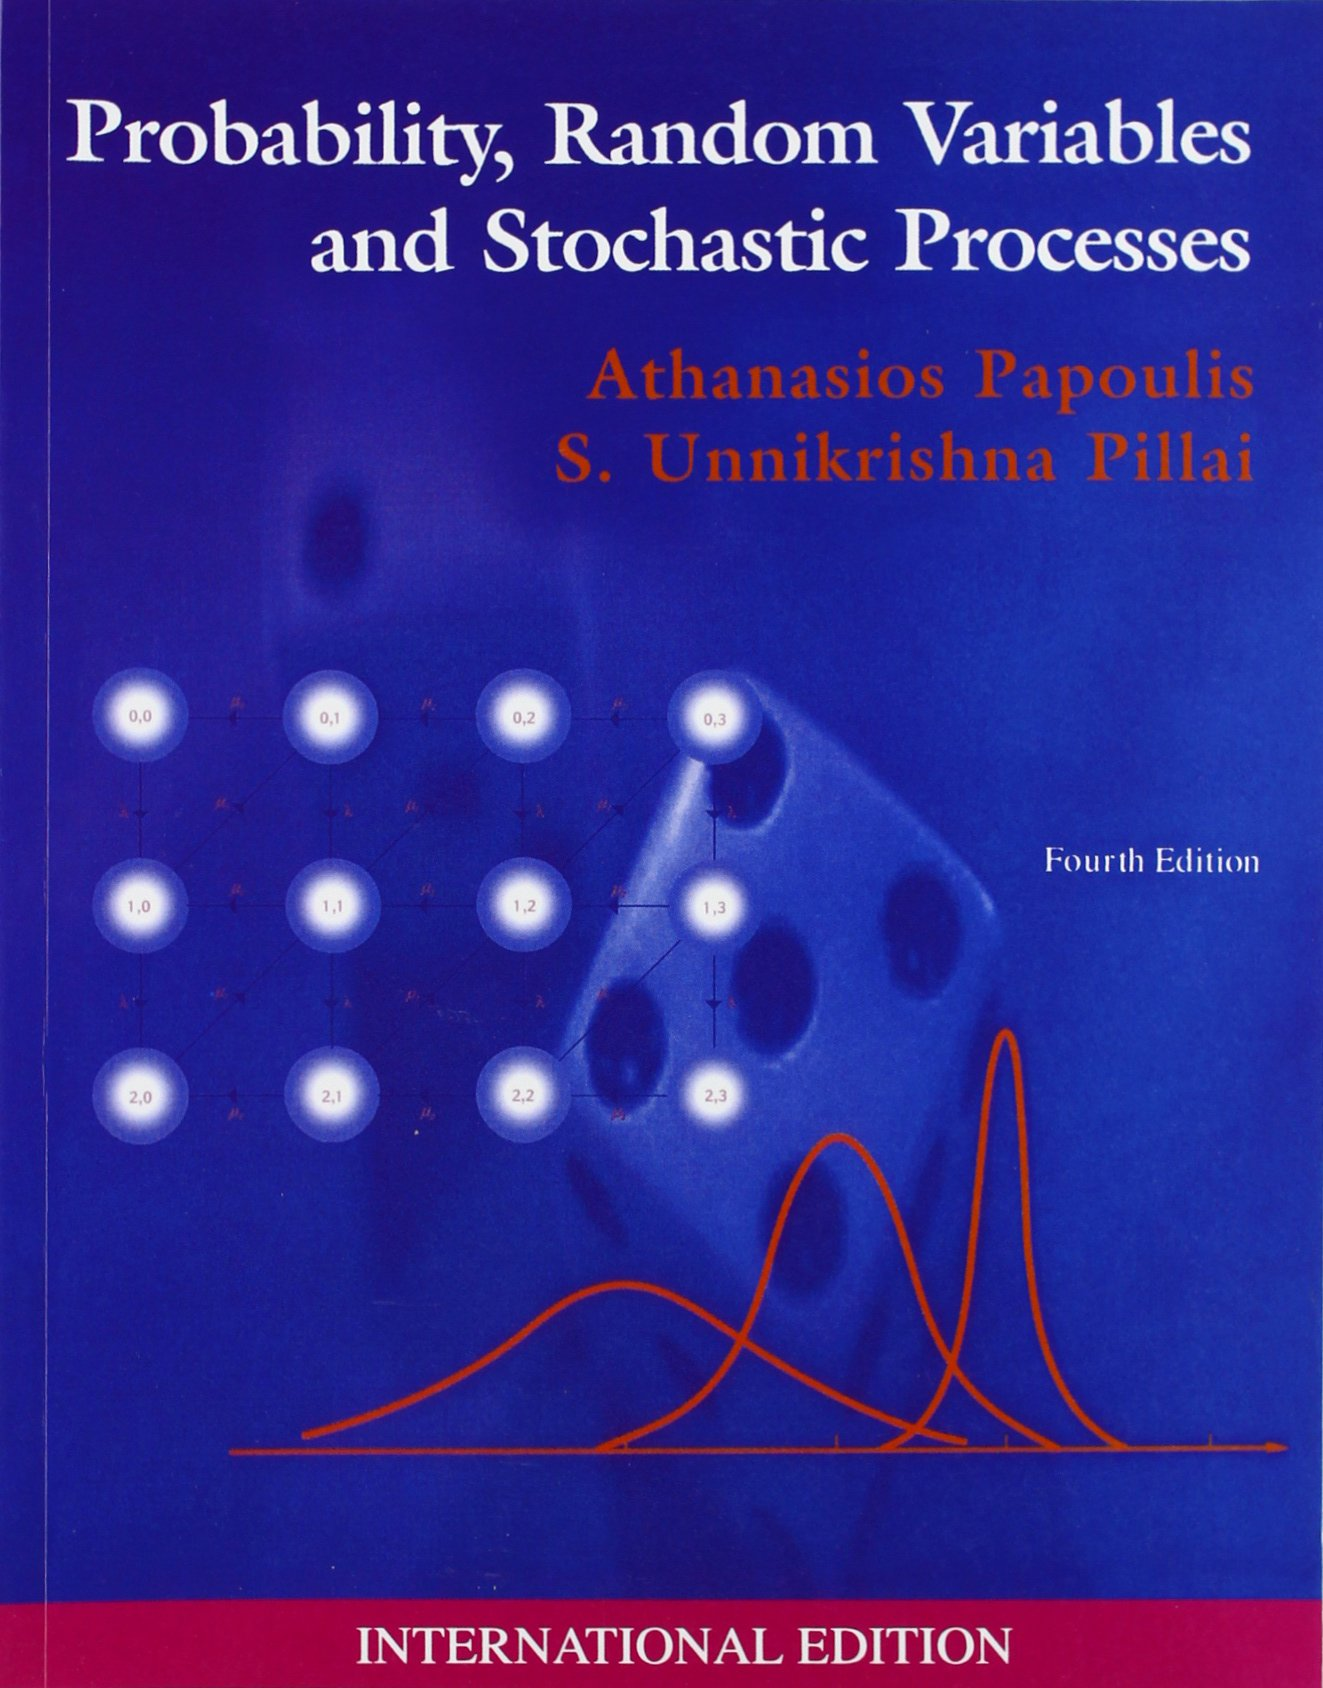 Probability, Random Variables and Stochastic Processes By Athanasios Papoulis, S. Unnikrishna Pillai